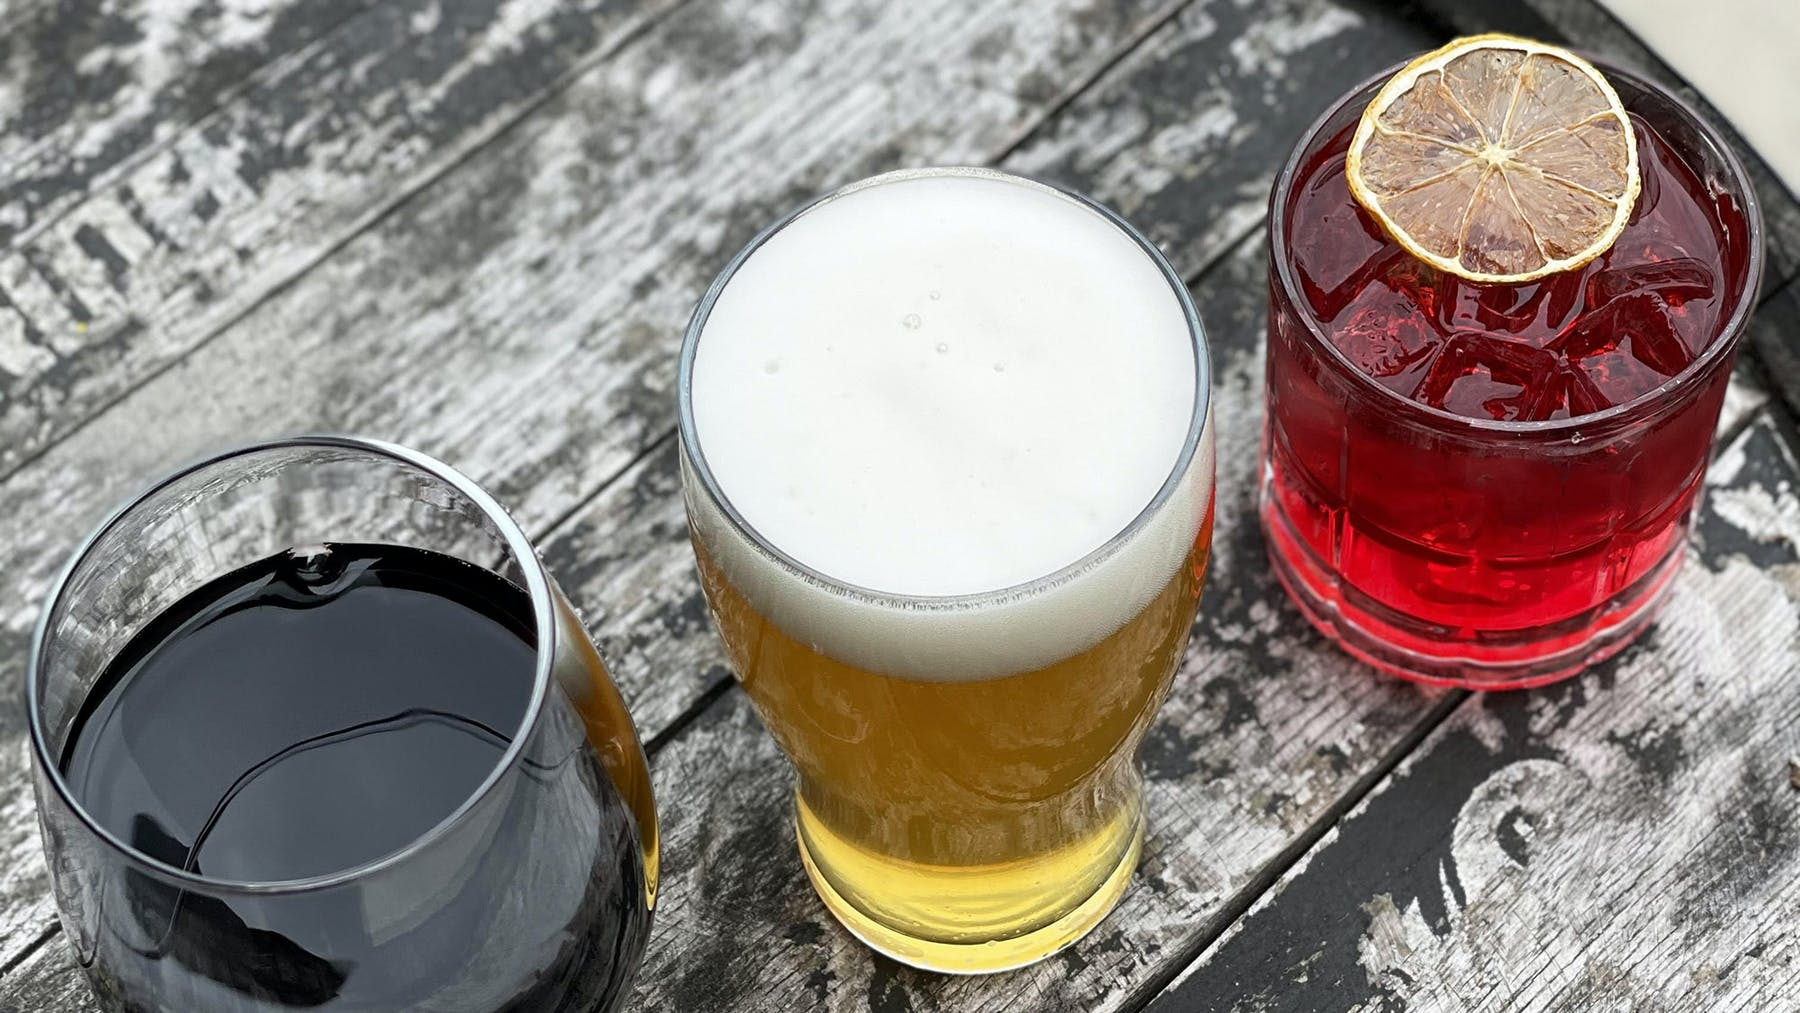 a glass of red wine, glass of beer, and a red cocktail on barrel